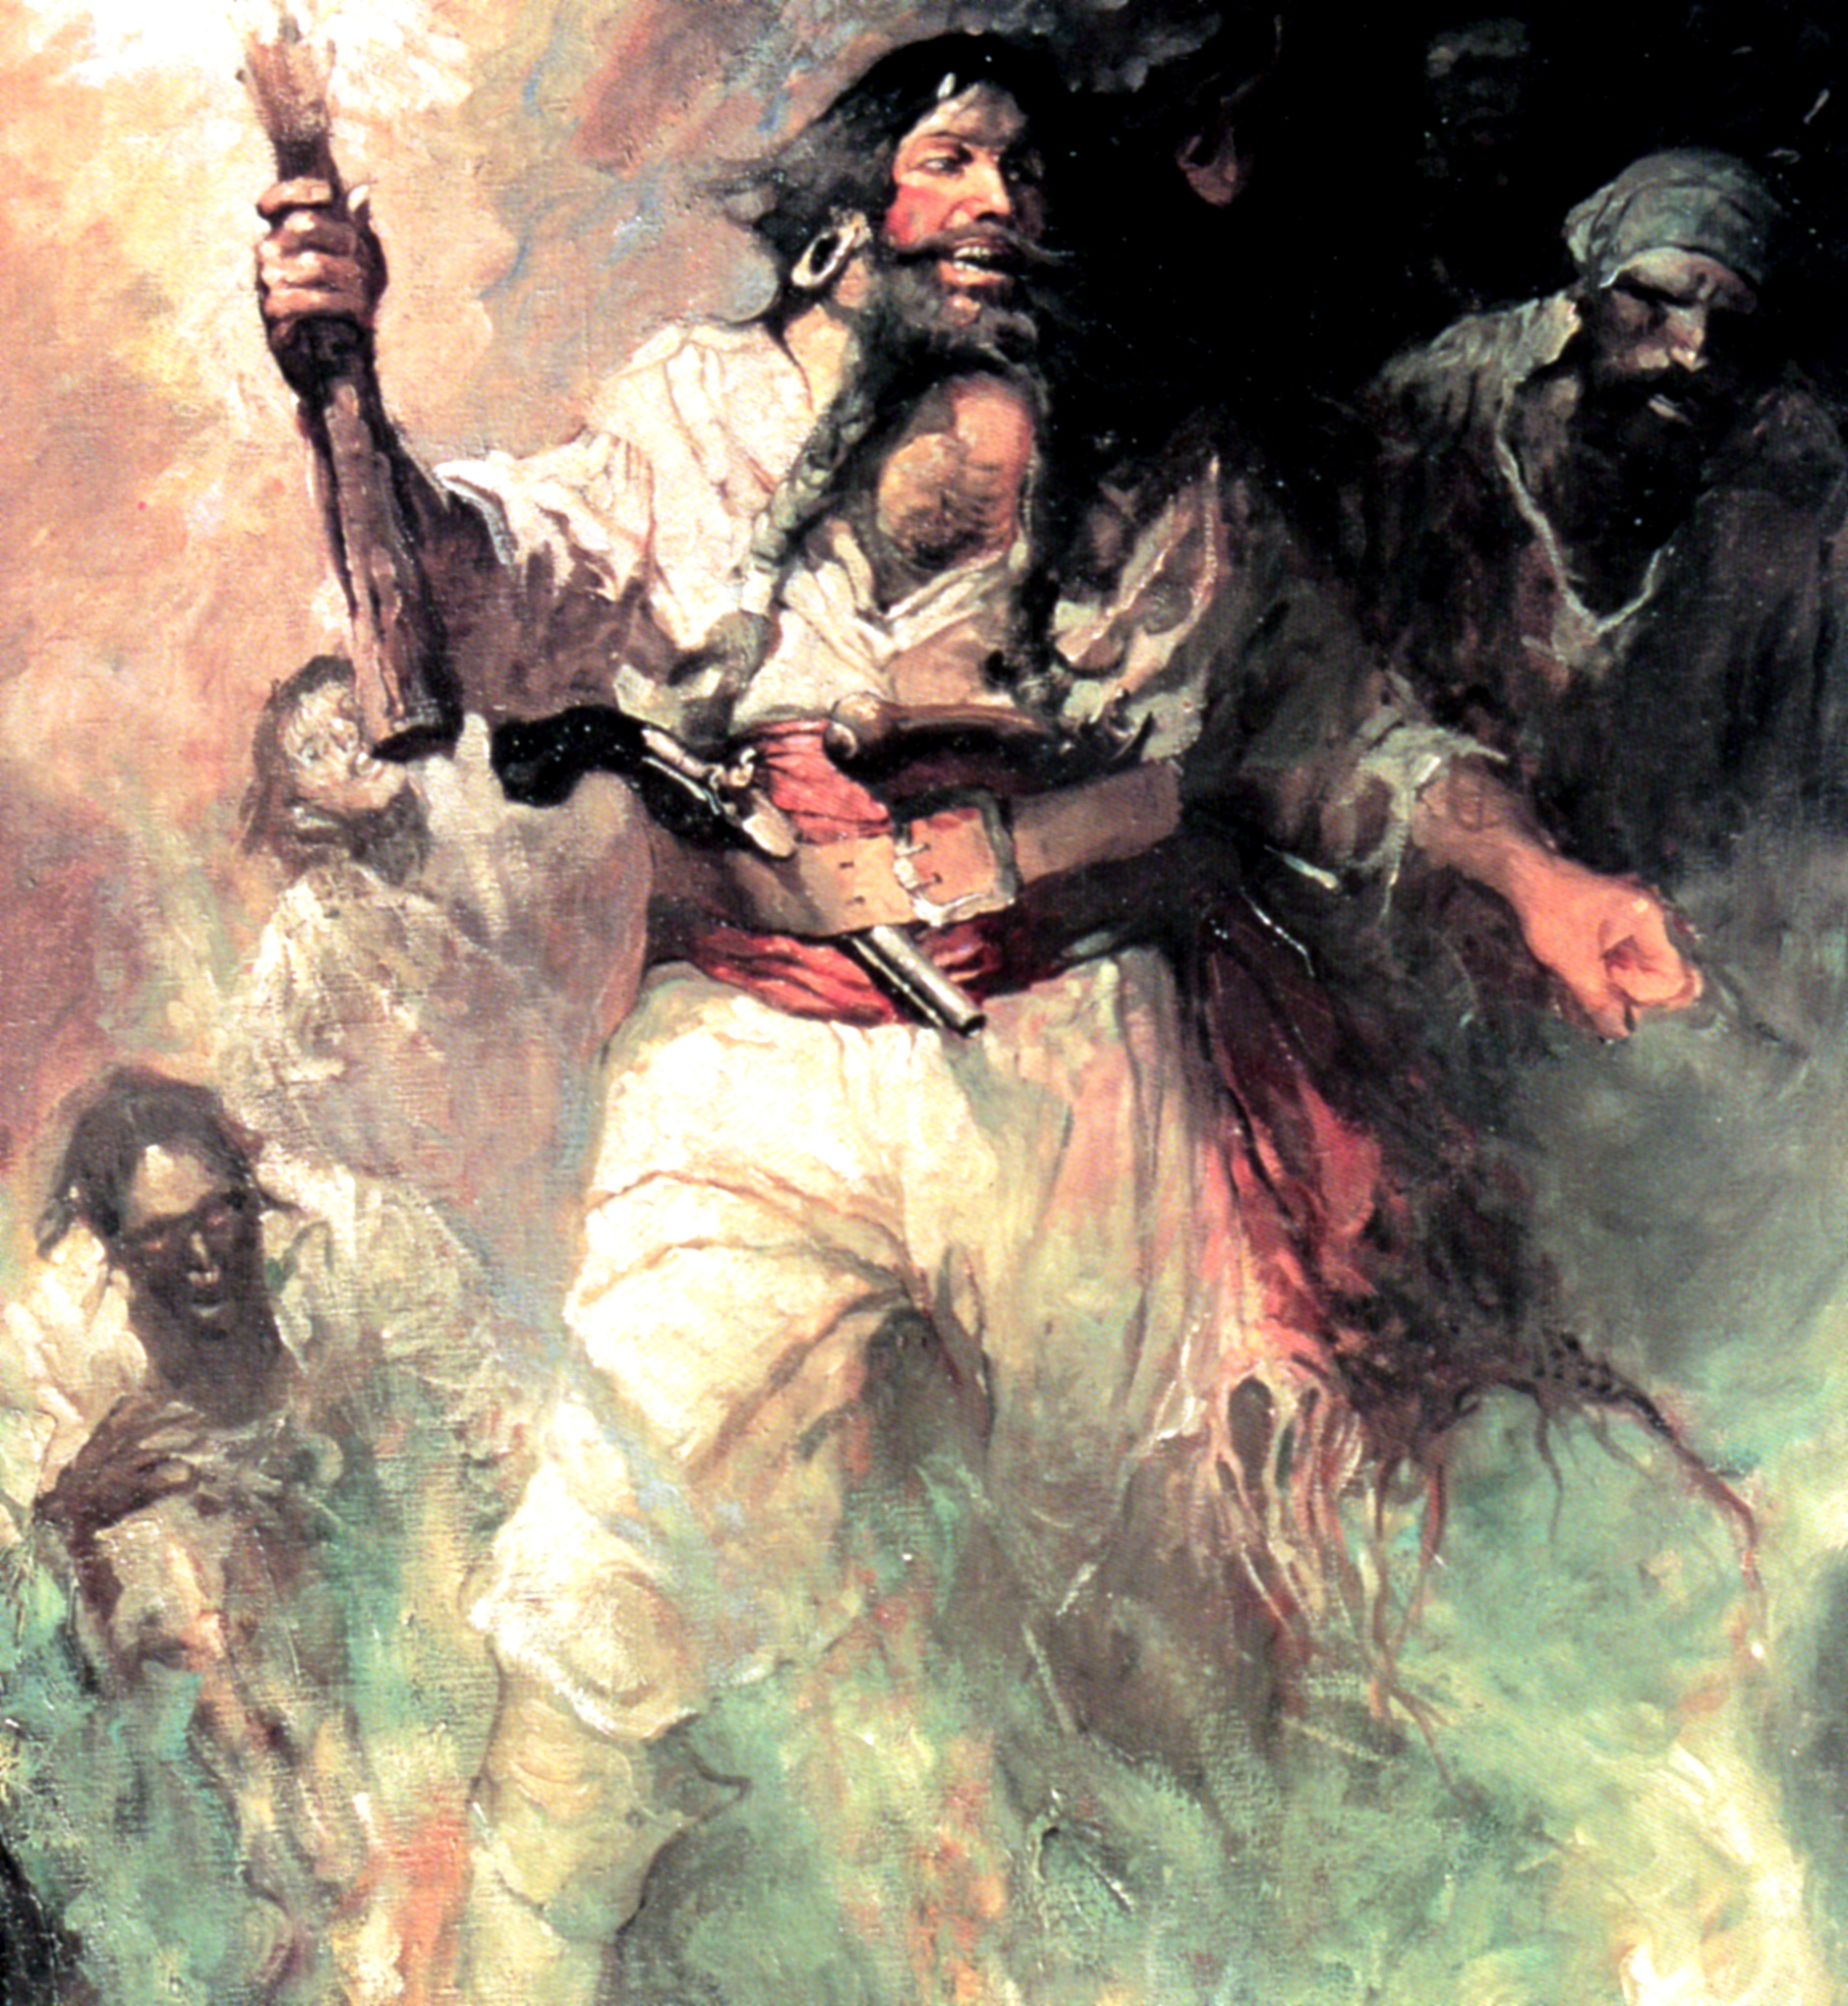 Blackbeard by Frank Schoonover